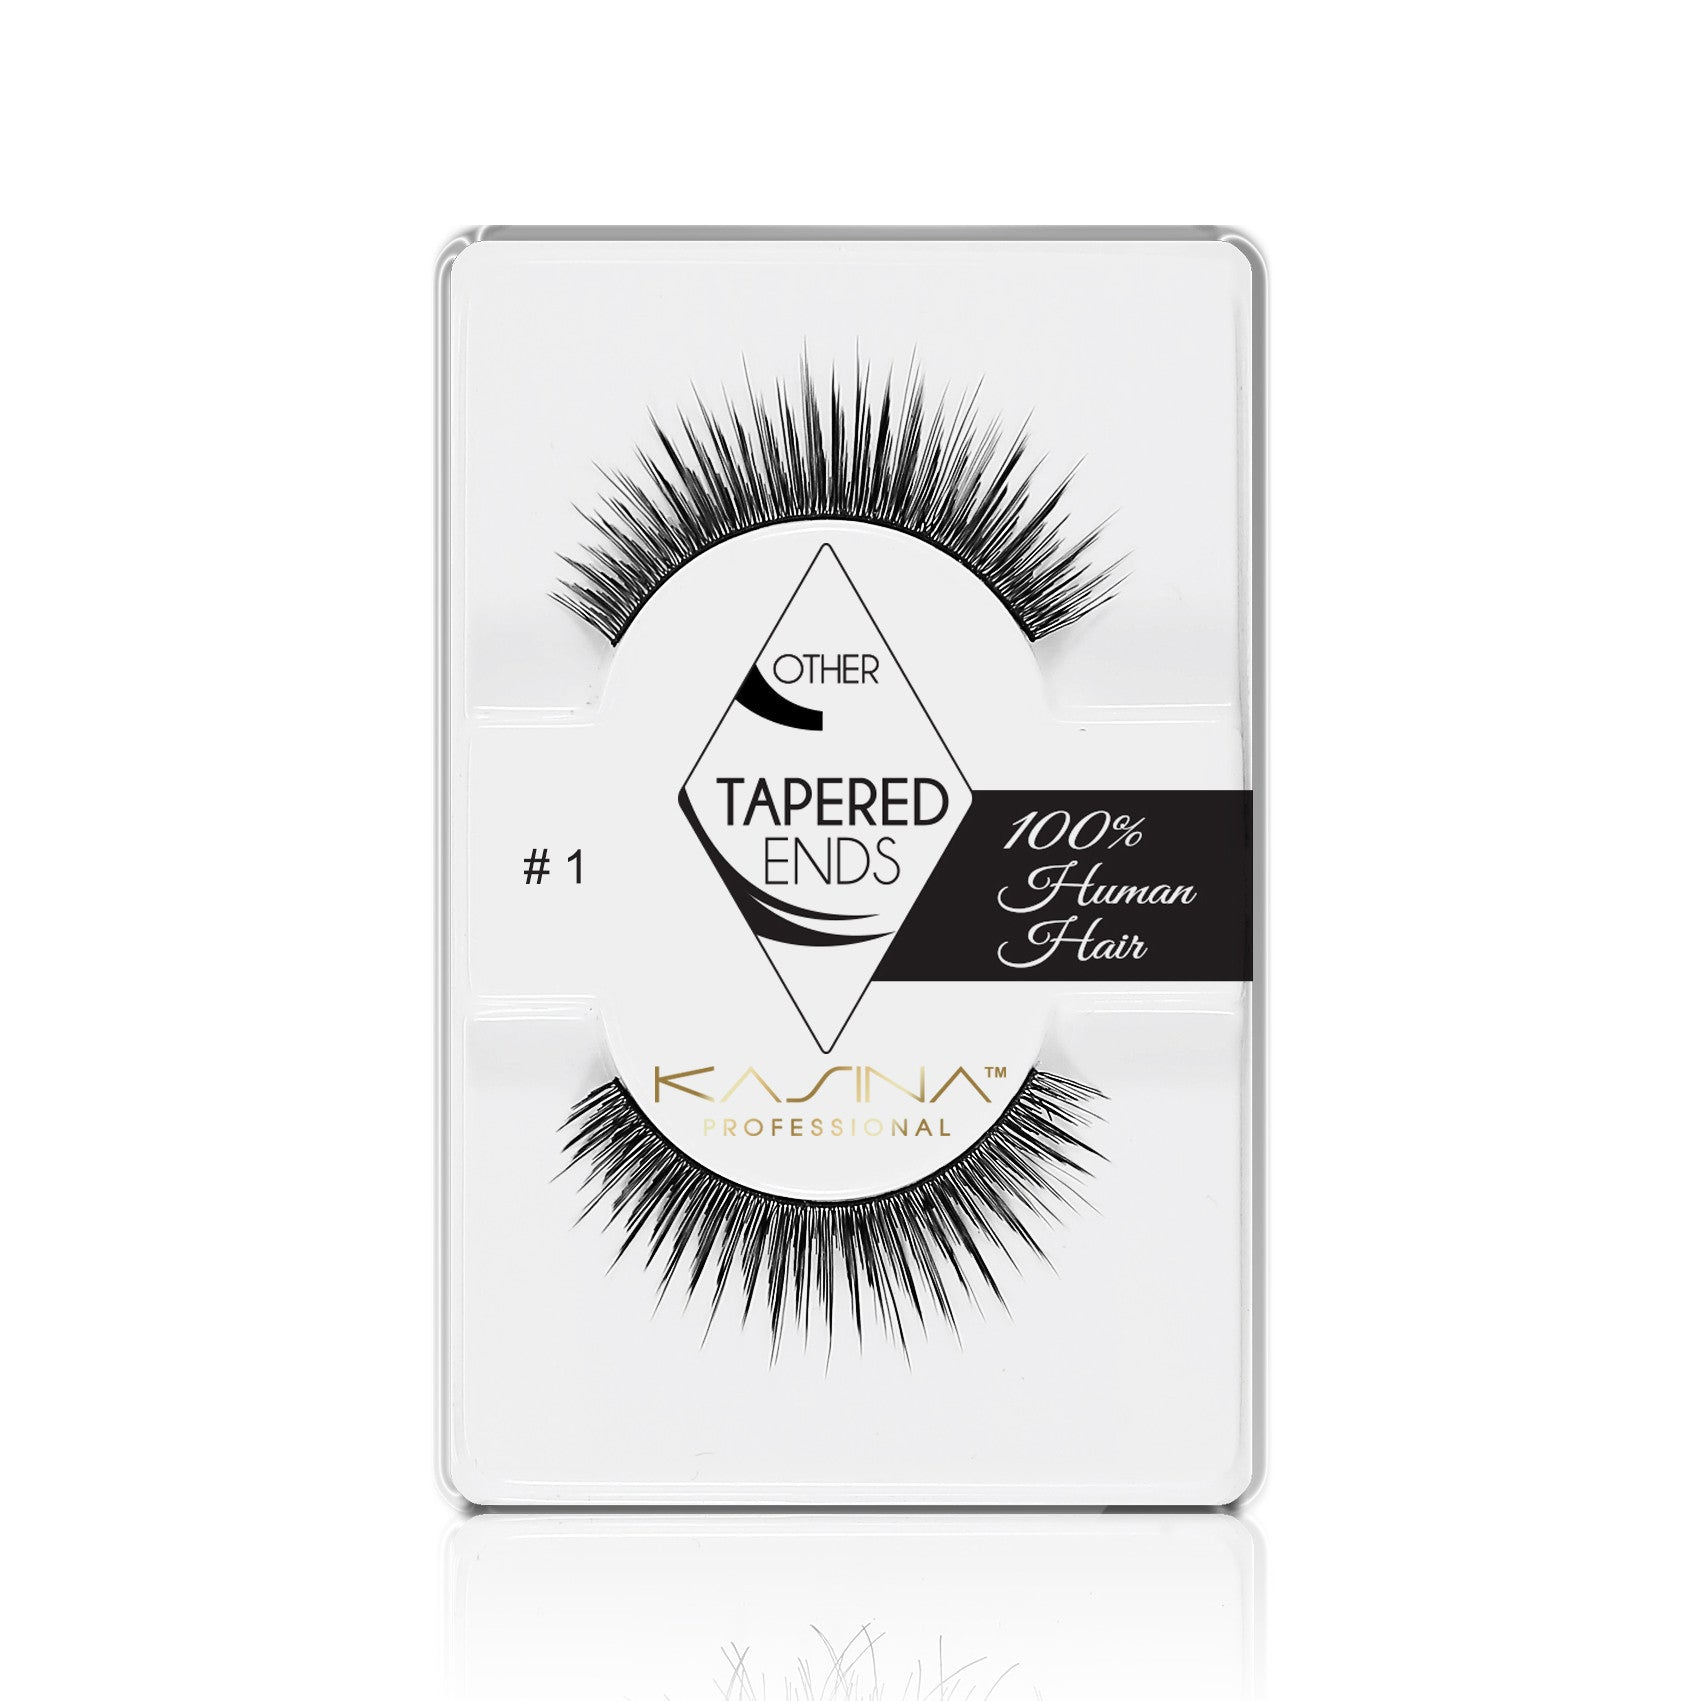 False Lashes - Professional Tapered ends lashes 1T. Chloe - Recommended by Professional Makeup Artists.